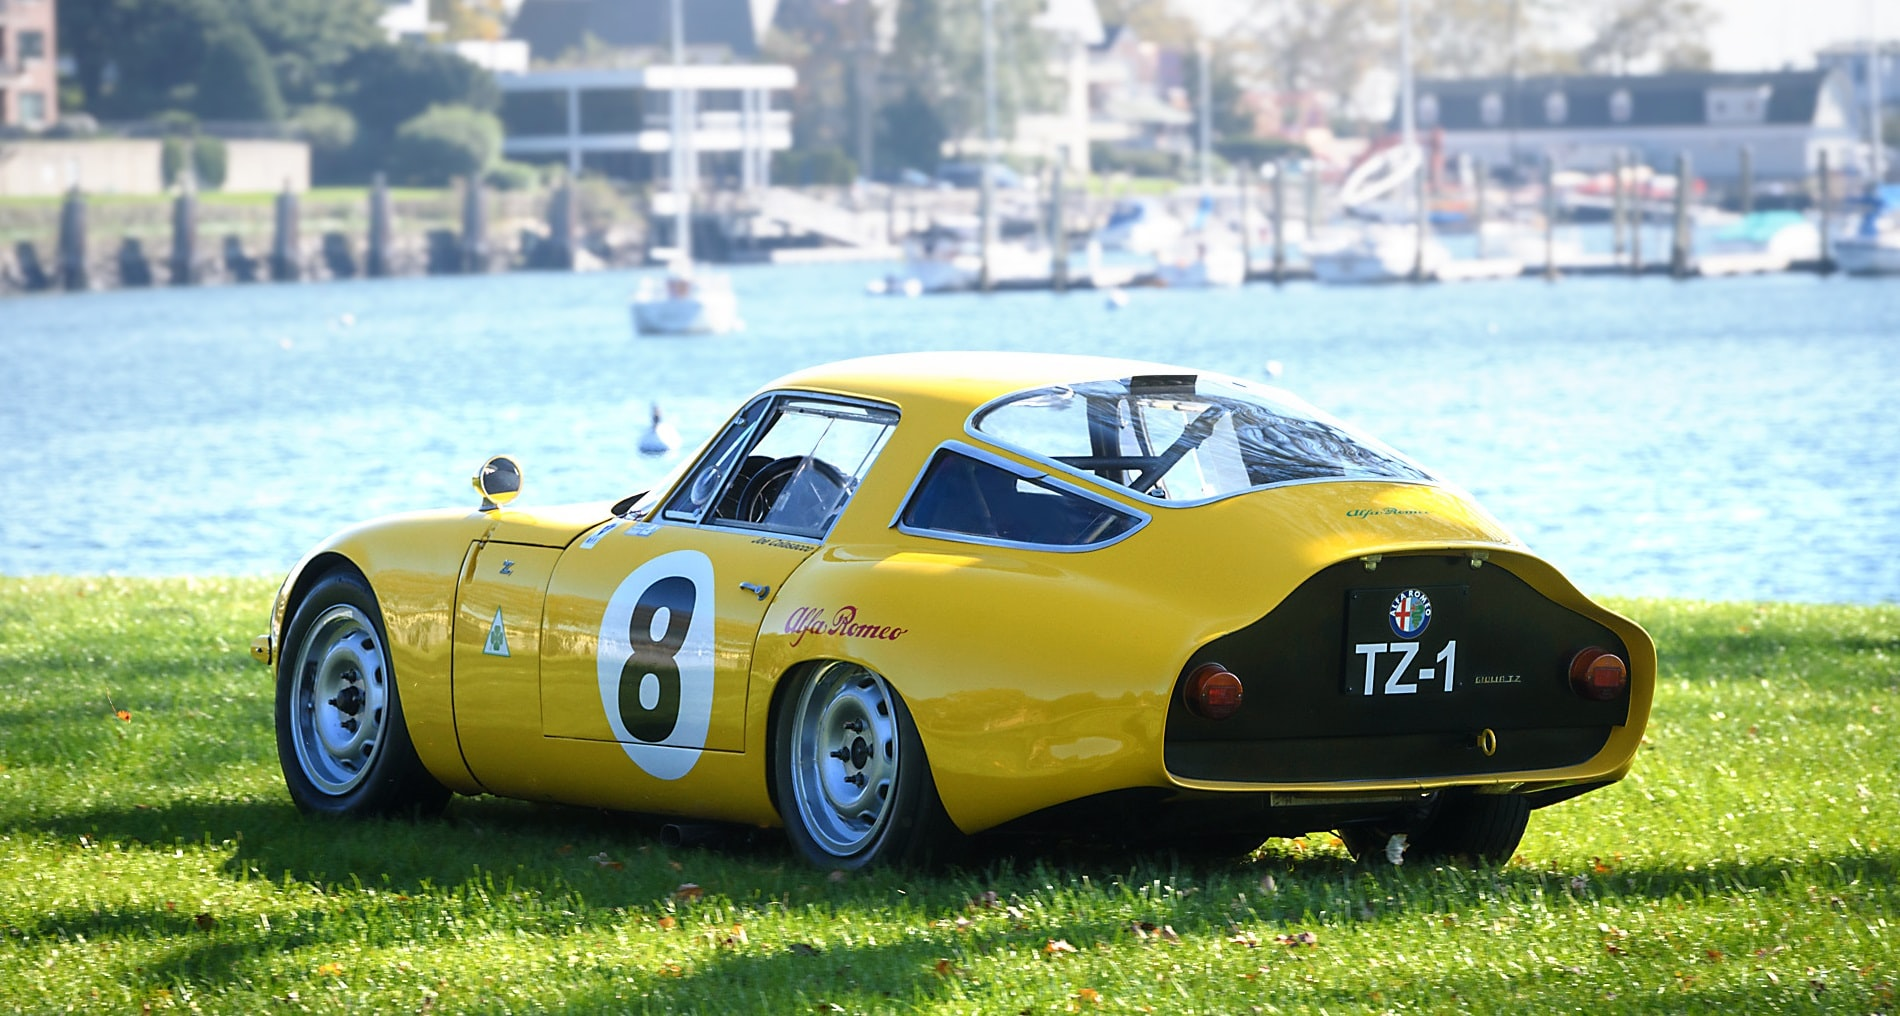 Happenings: The HODINKEE Shop At The 2019 Greenwich Concours d'Elegance